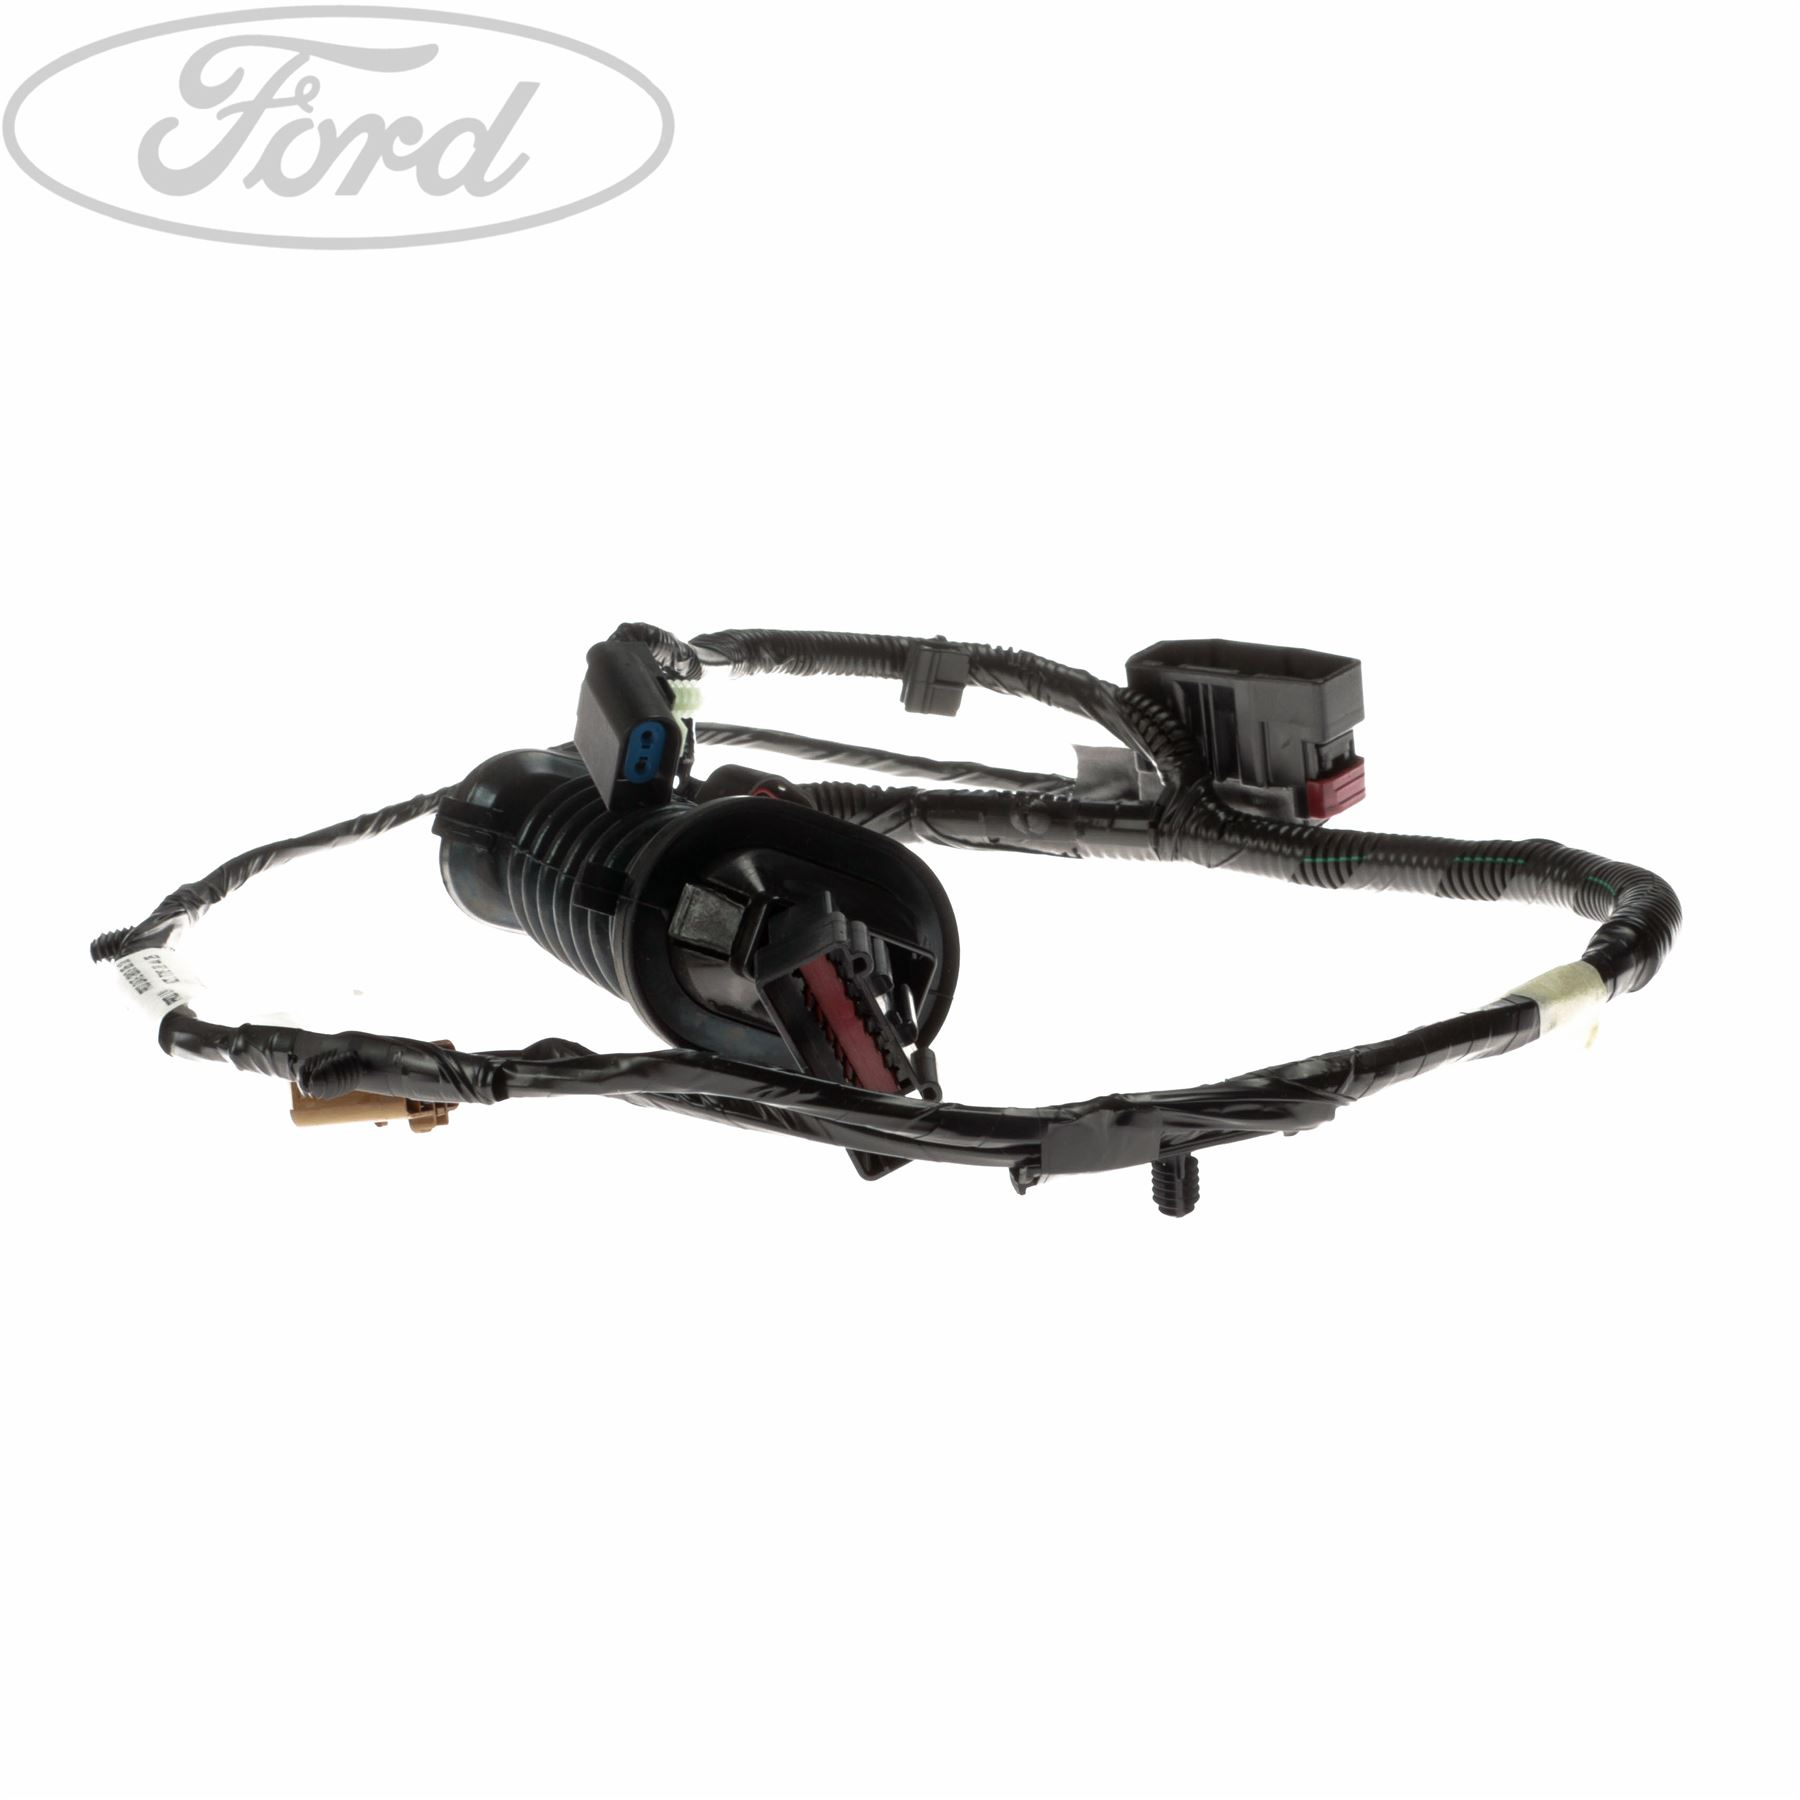 hight resolution of details about genuine ford transit mk 7 front passenger door locking system wiring 1521543